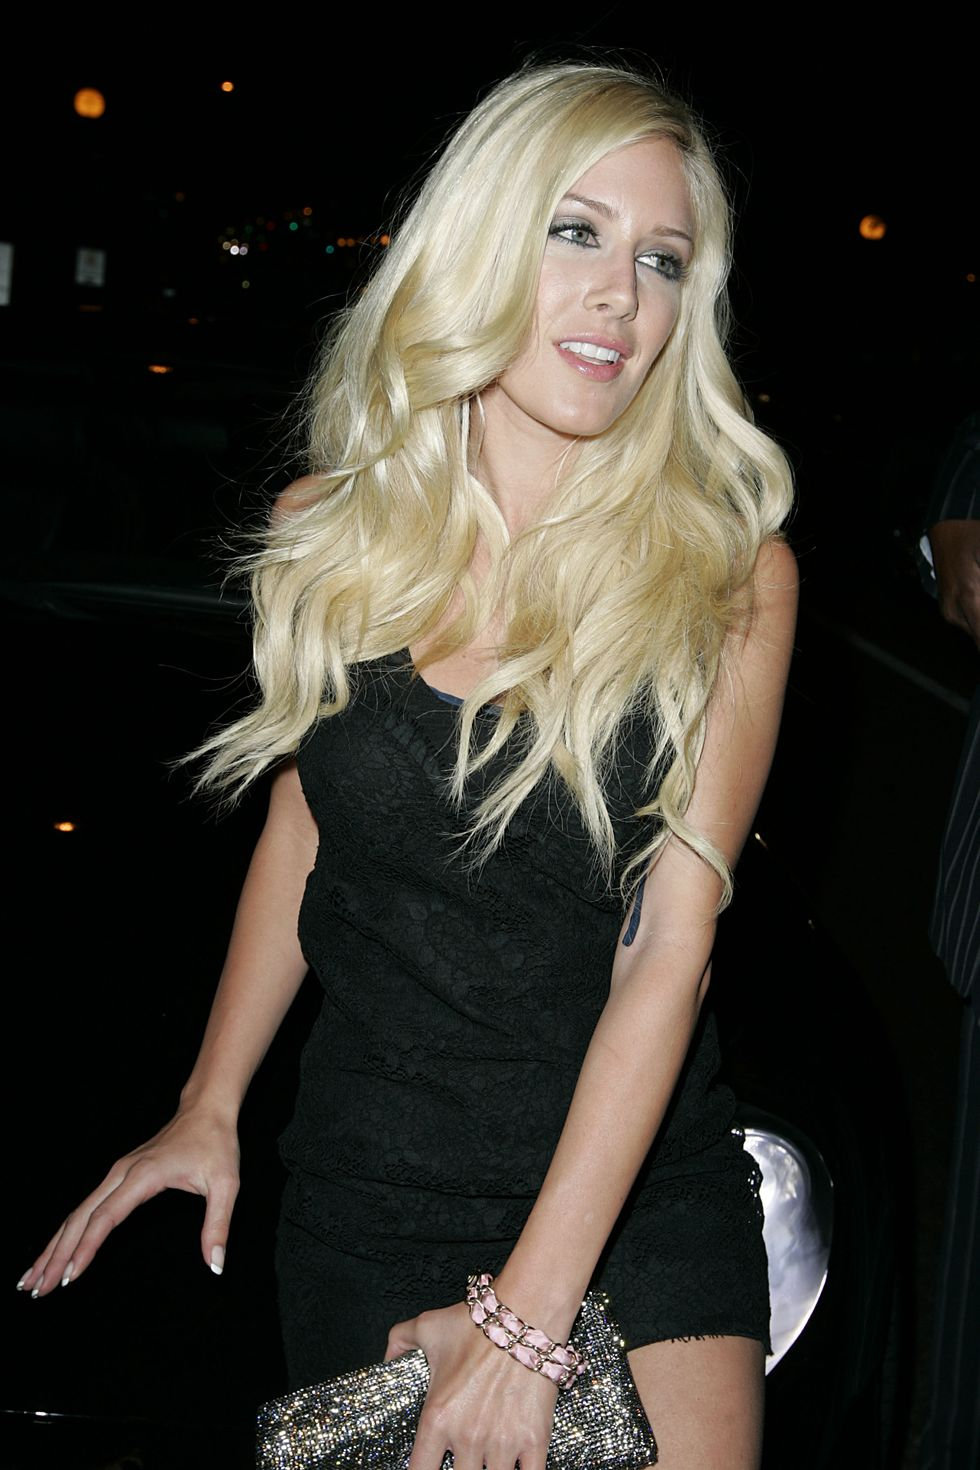 Heidi Montag Shows Off Her Hot Quot Surgery Accomplished Quot Body